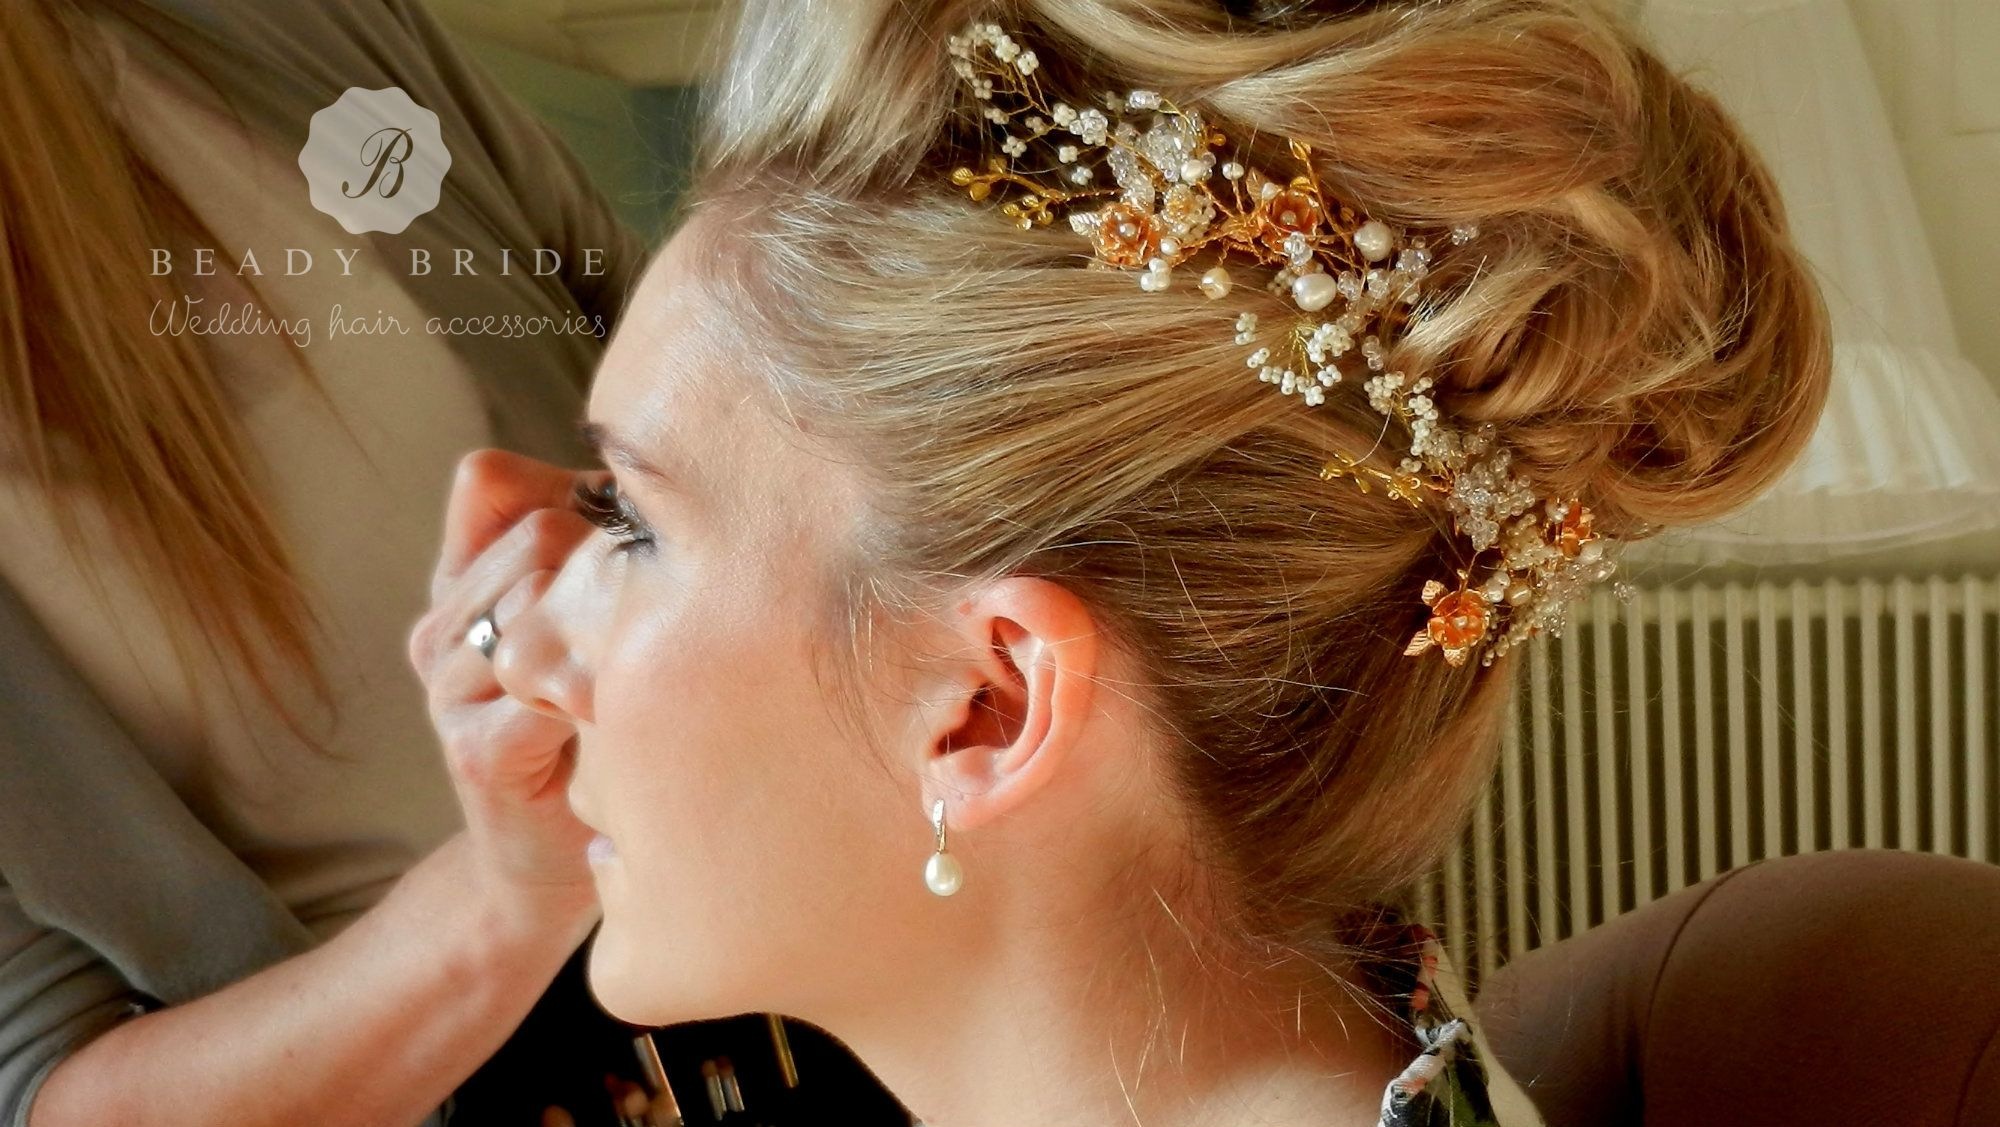 Floral wedding hair accessories by Beady Bride-UK